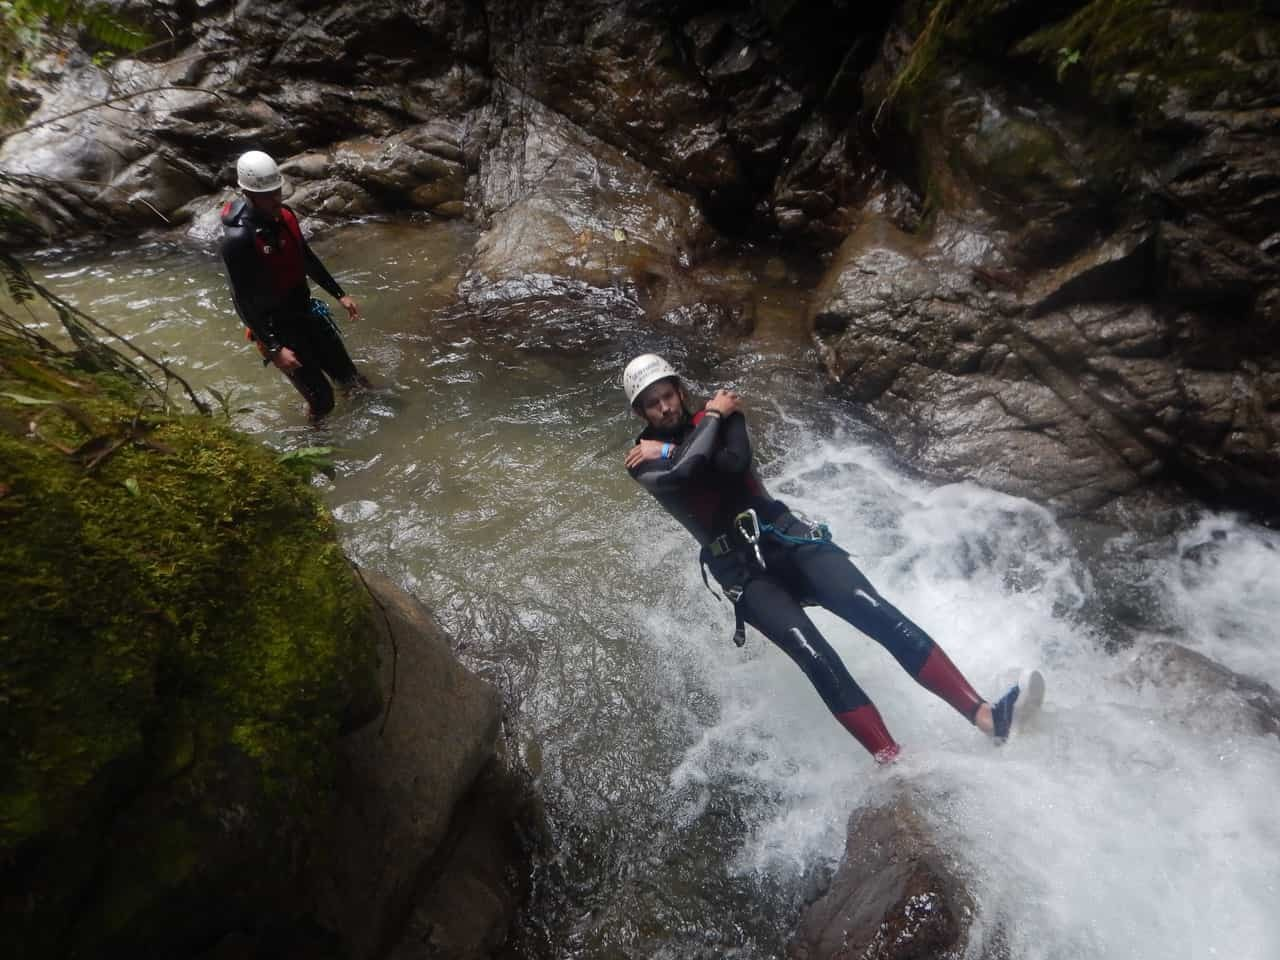 Splashing into the waters in the canyoning adventure with Takiri Travel, Ecuador